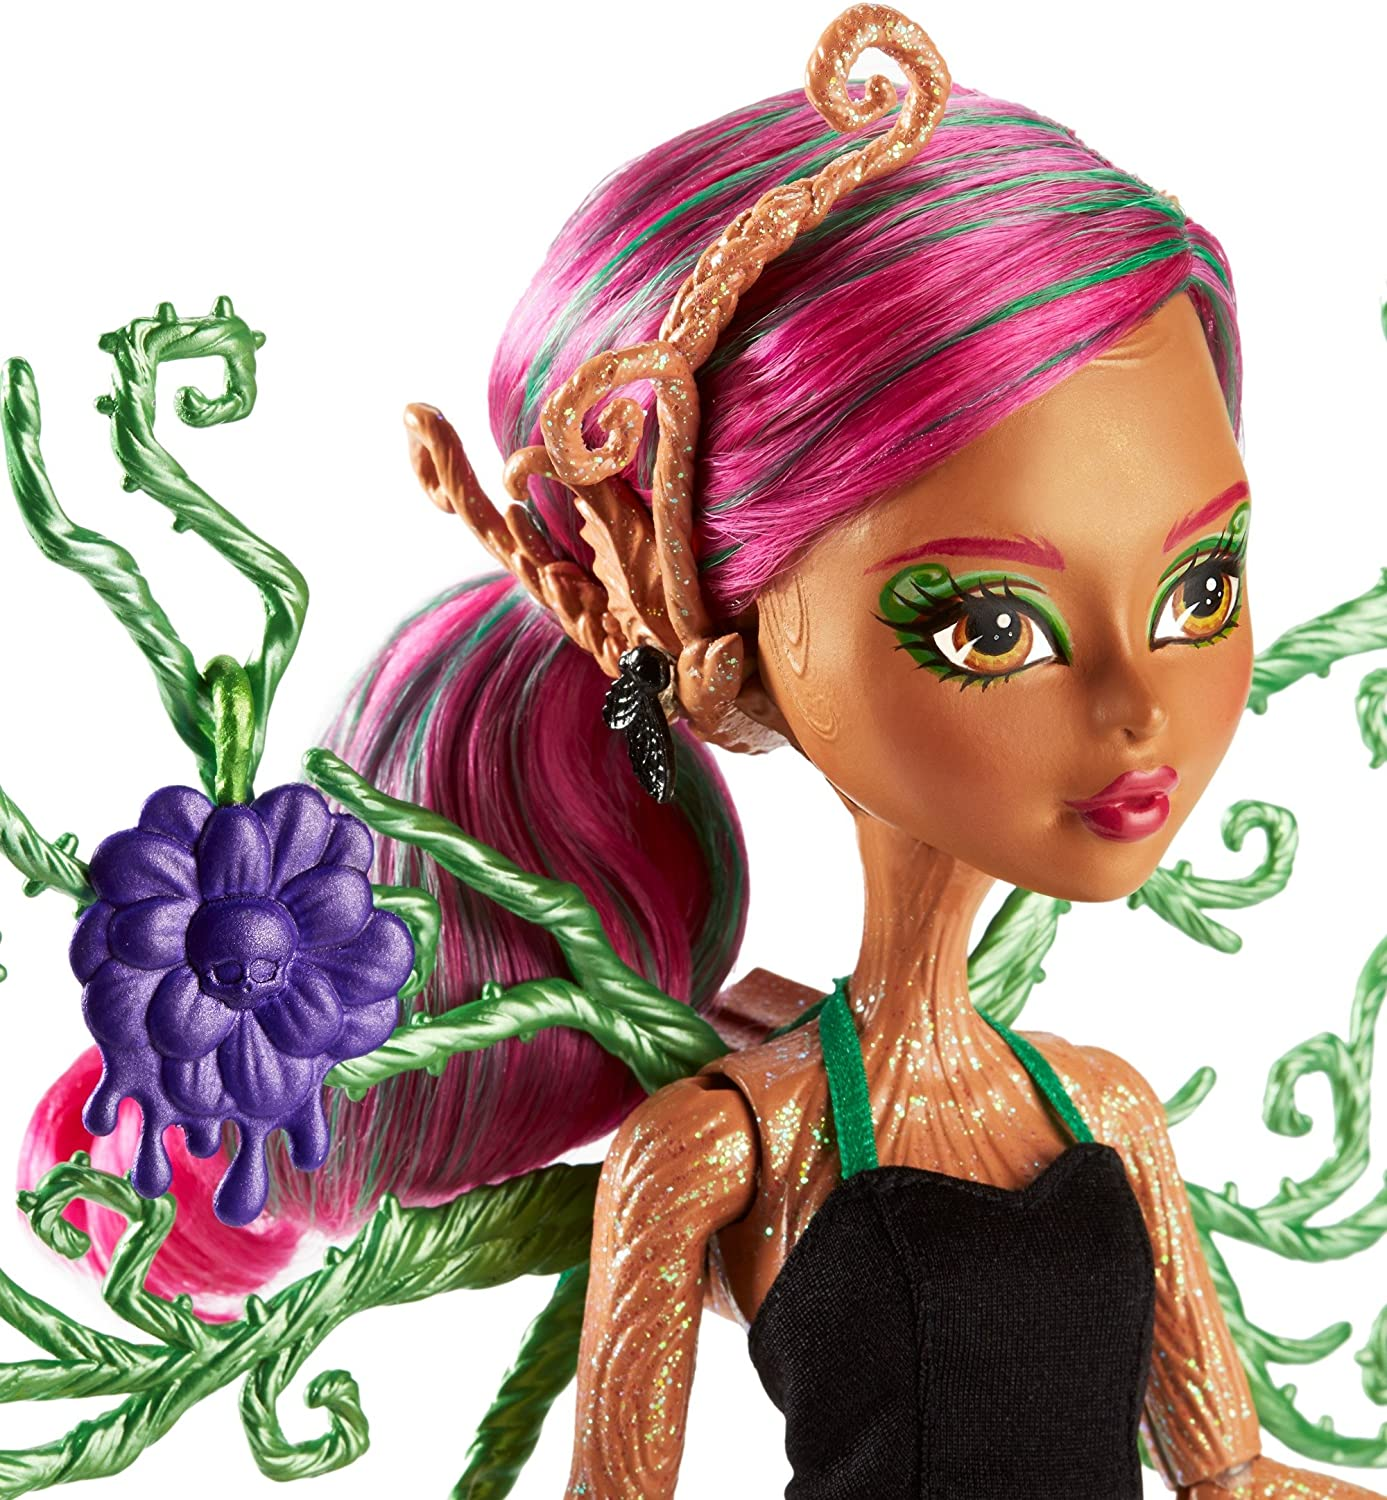 Monster high ghouls sports review betting binary options signals wiki